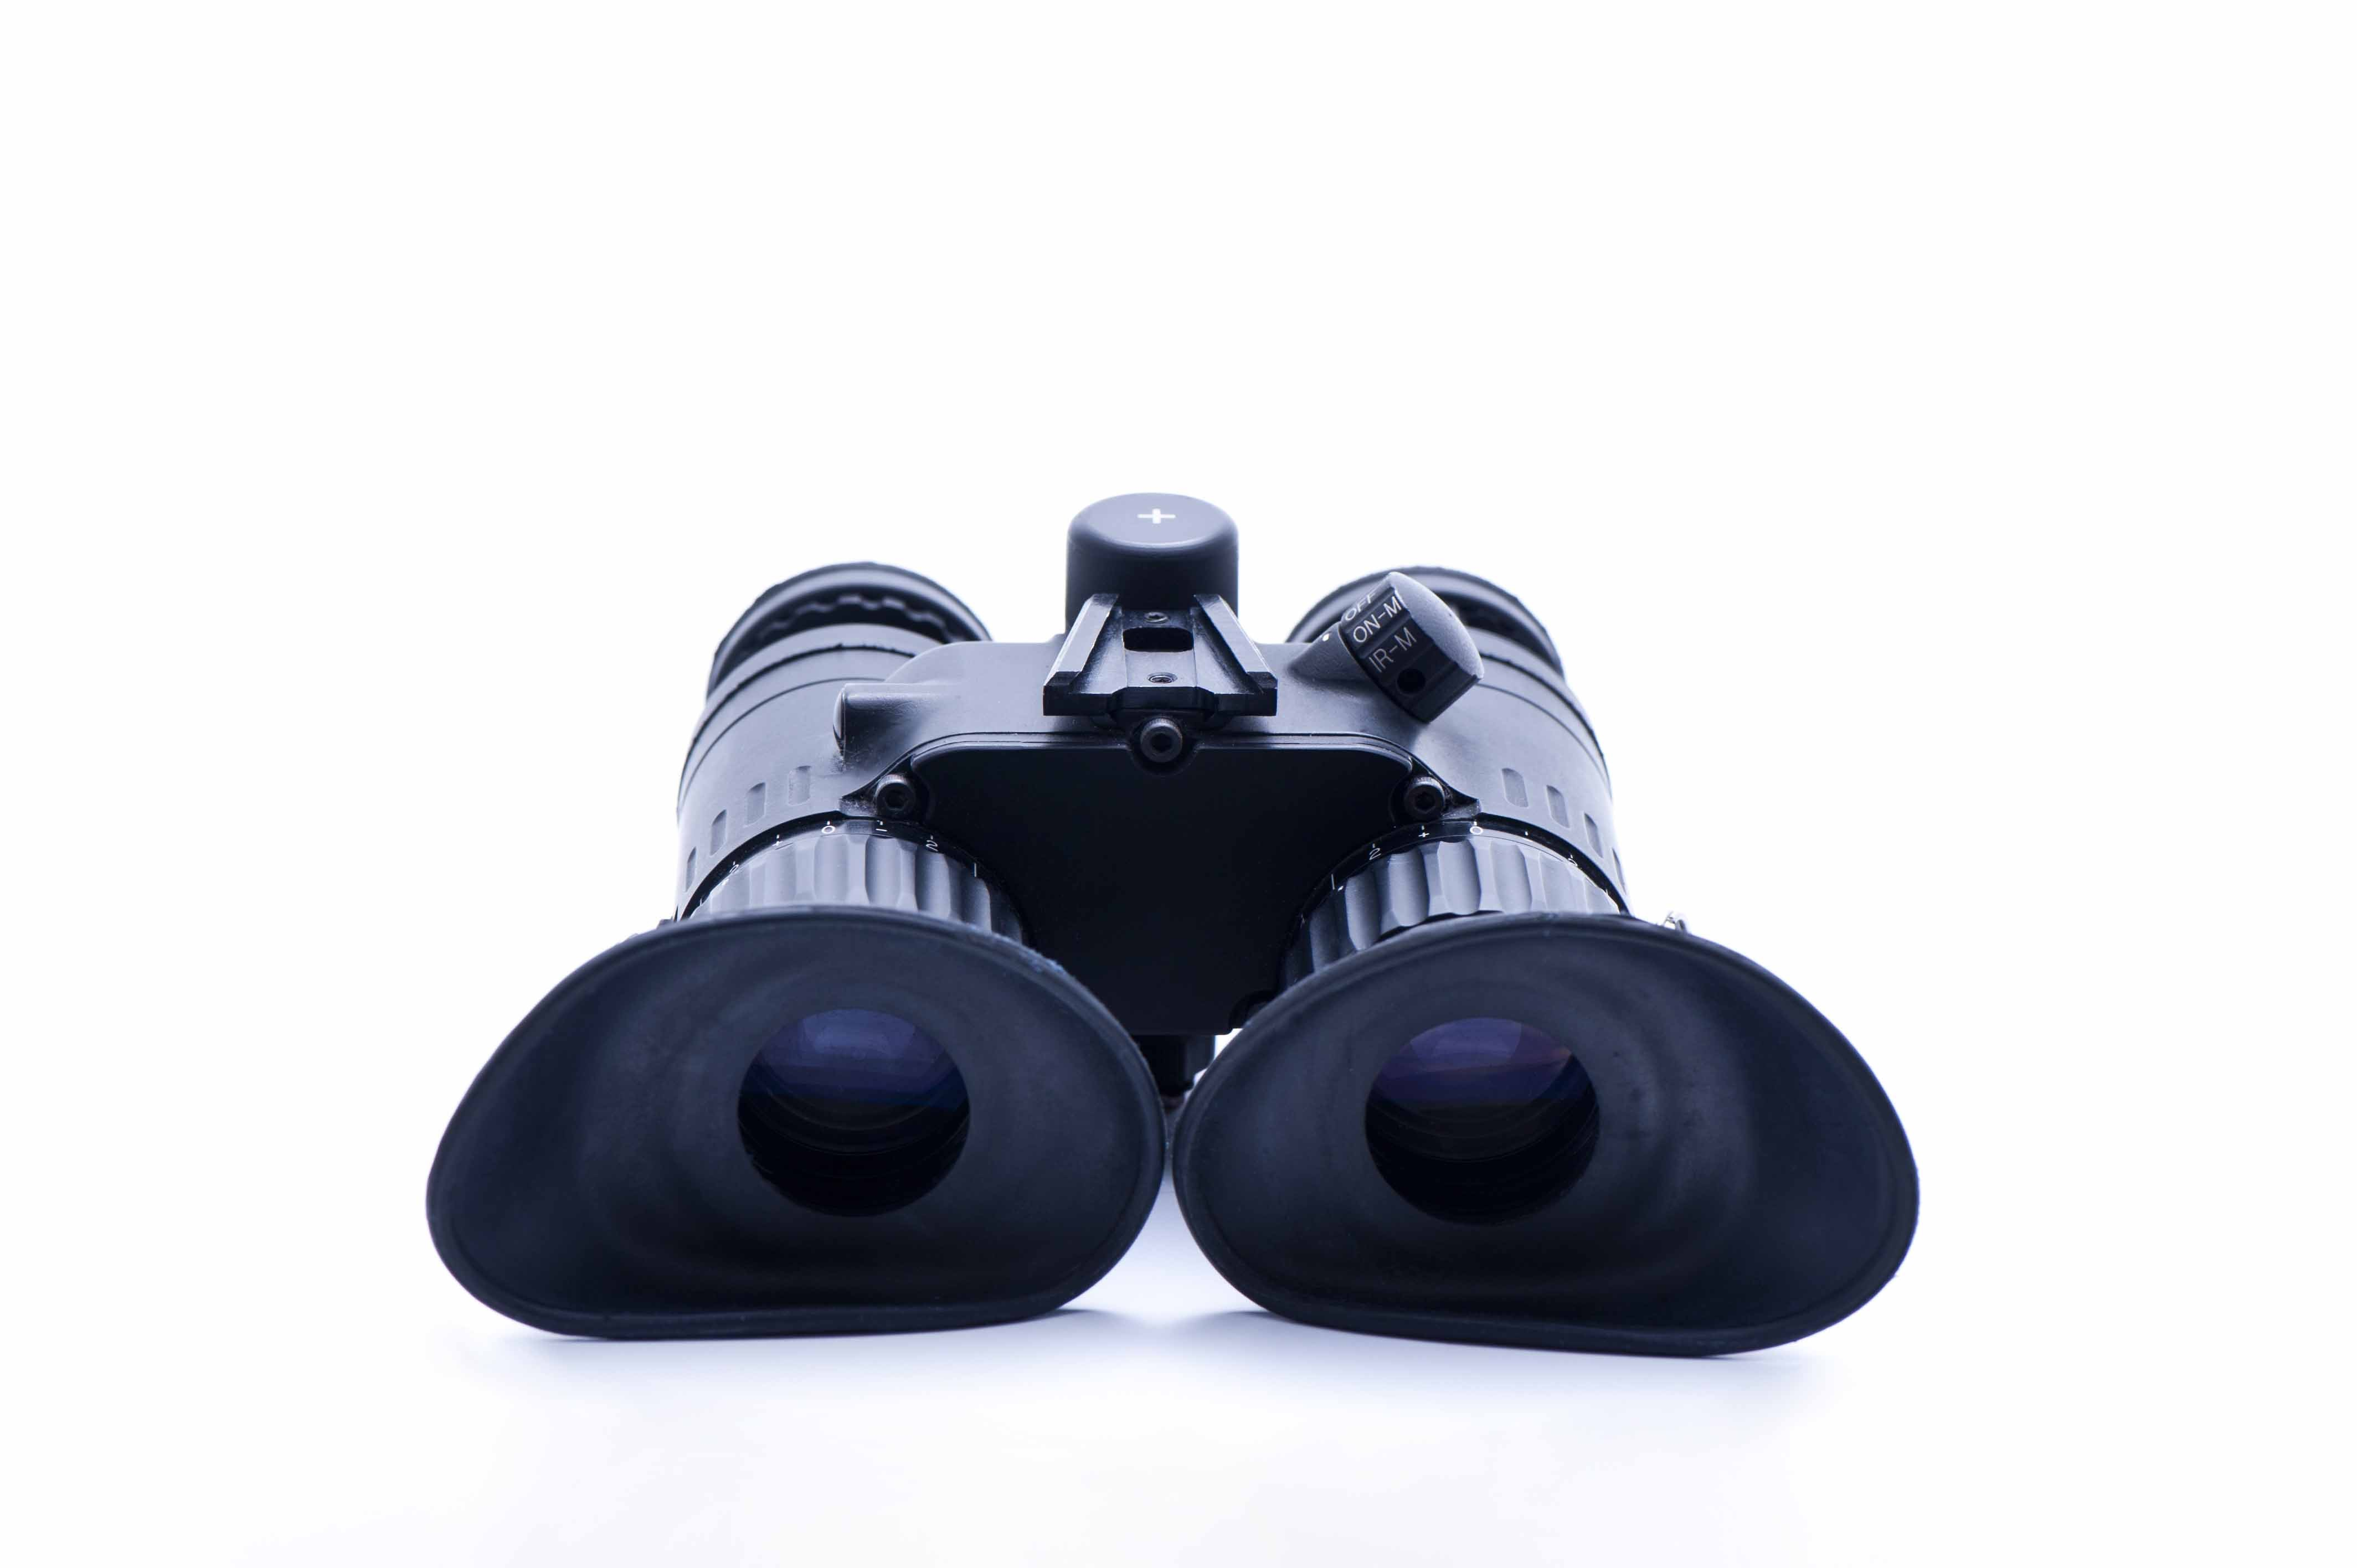 OPTIX DIANA TT - Twin Tube Night Vision Goggles